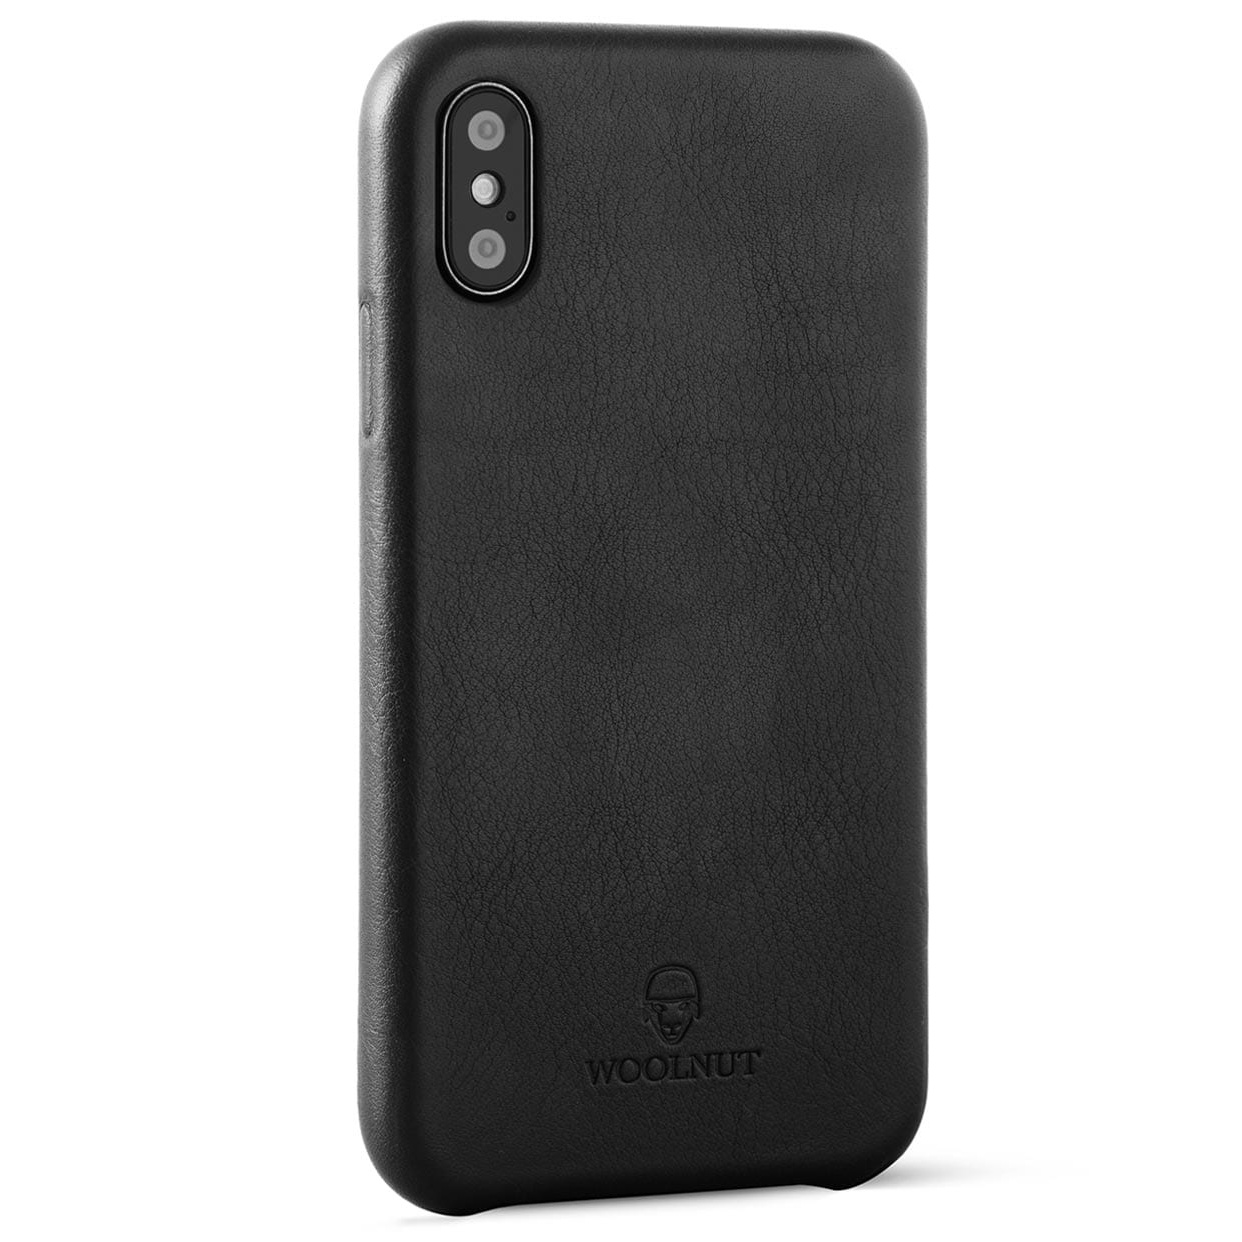 timeless design 64d2b 1e383 Woolnut iPhone Xs / X Premium Soft Case Nappa Leather, Black